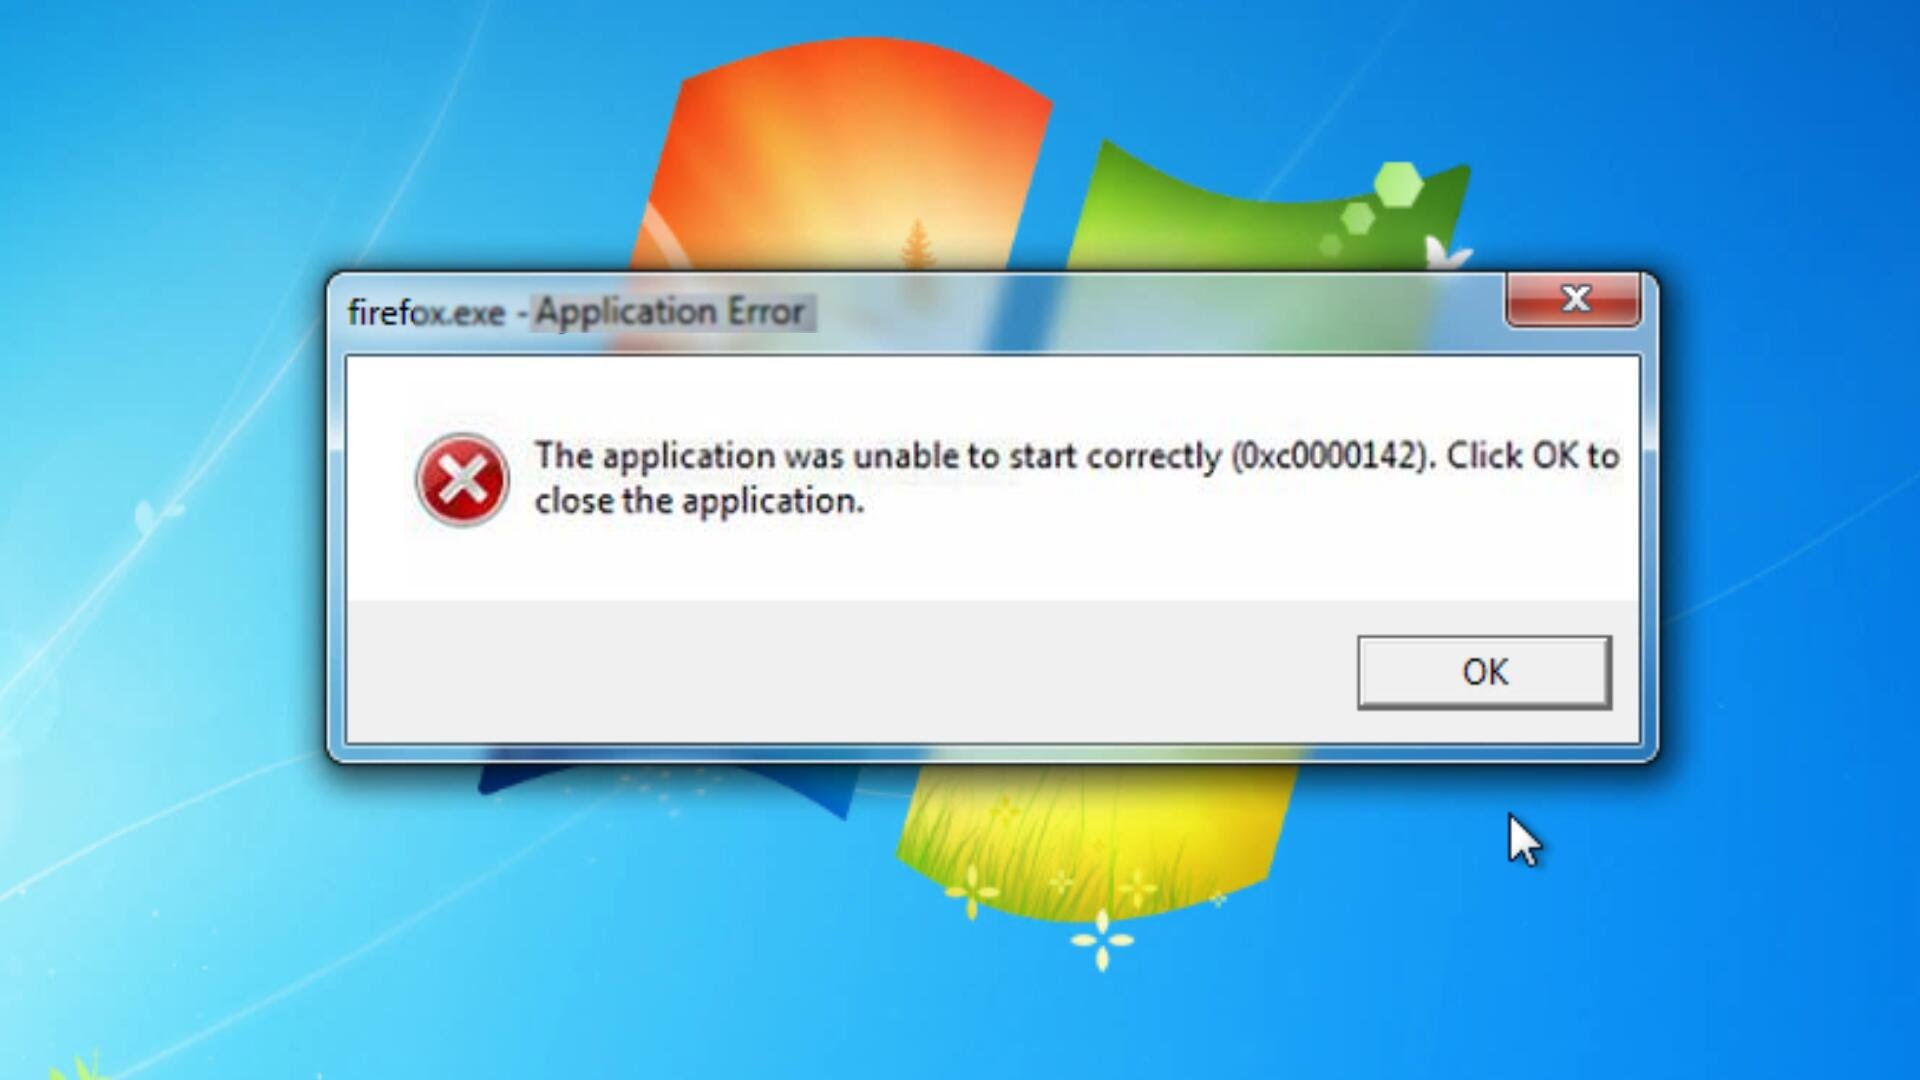 the application was unable to start correctly 0xc0000022 windows 10